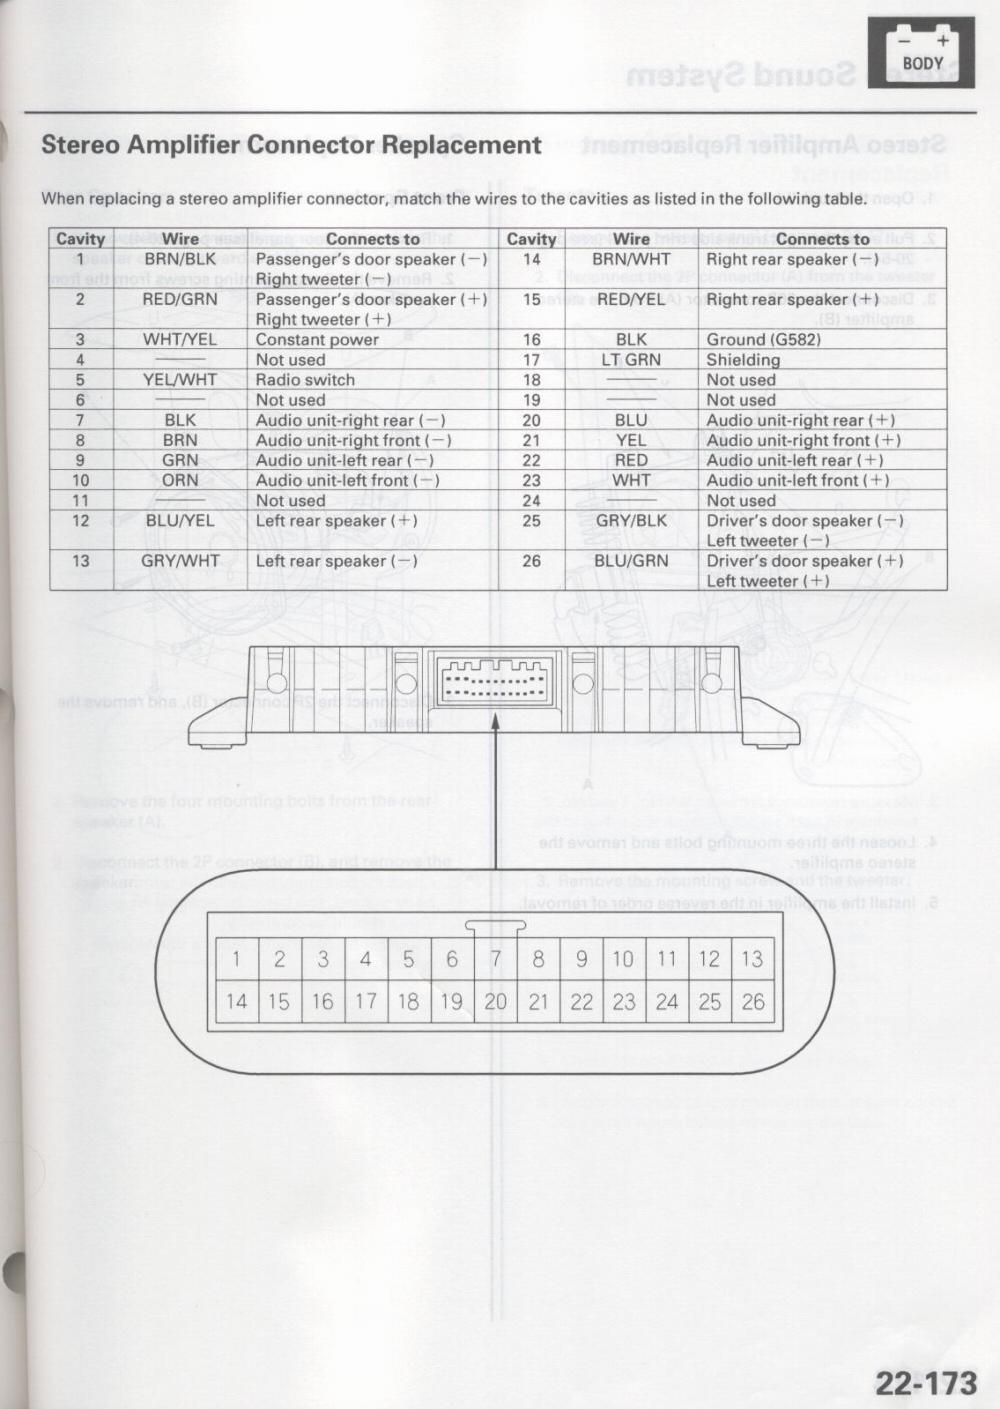 Acura 2002 TL car stereo amplifier wiring diagram harness car radio stereo audio wiring diagram autoradio connector wire 2012 chrysler 200 speaker wiring diagram at panicattacktreatment.co